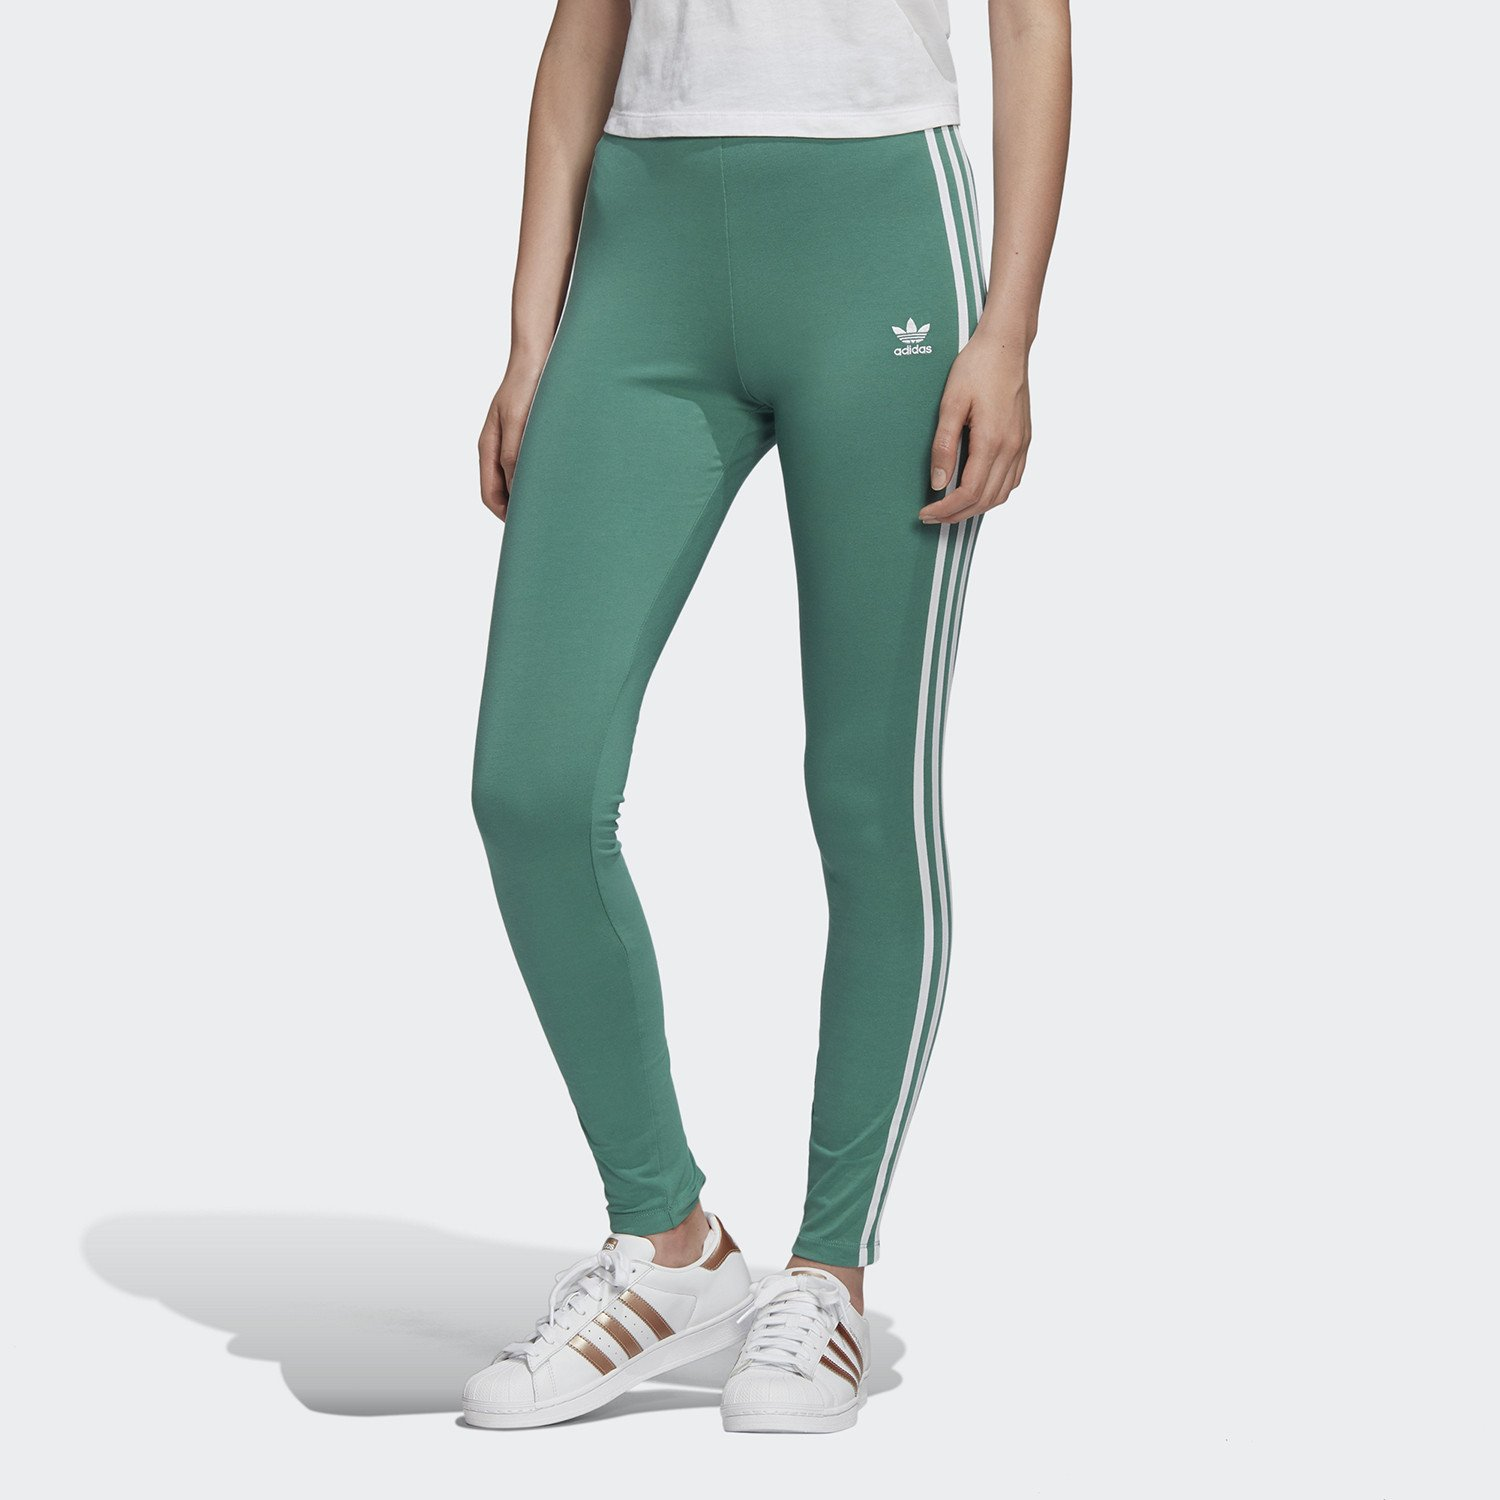 adidas Originals Adicolor 3-Stripes Leggings (9000045492_31399)